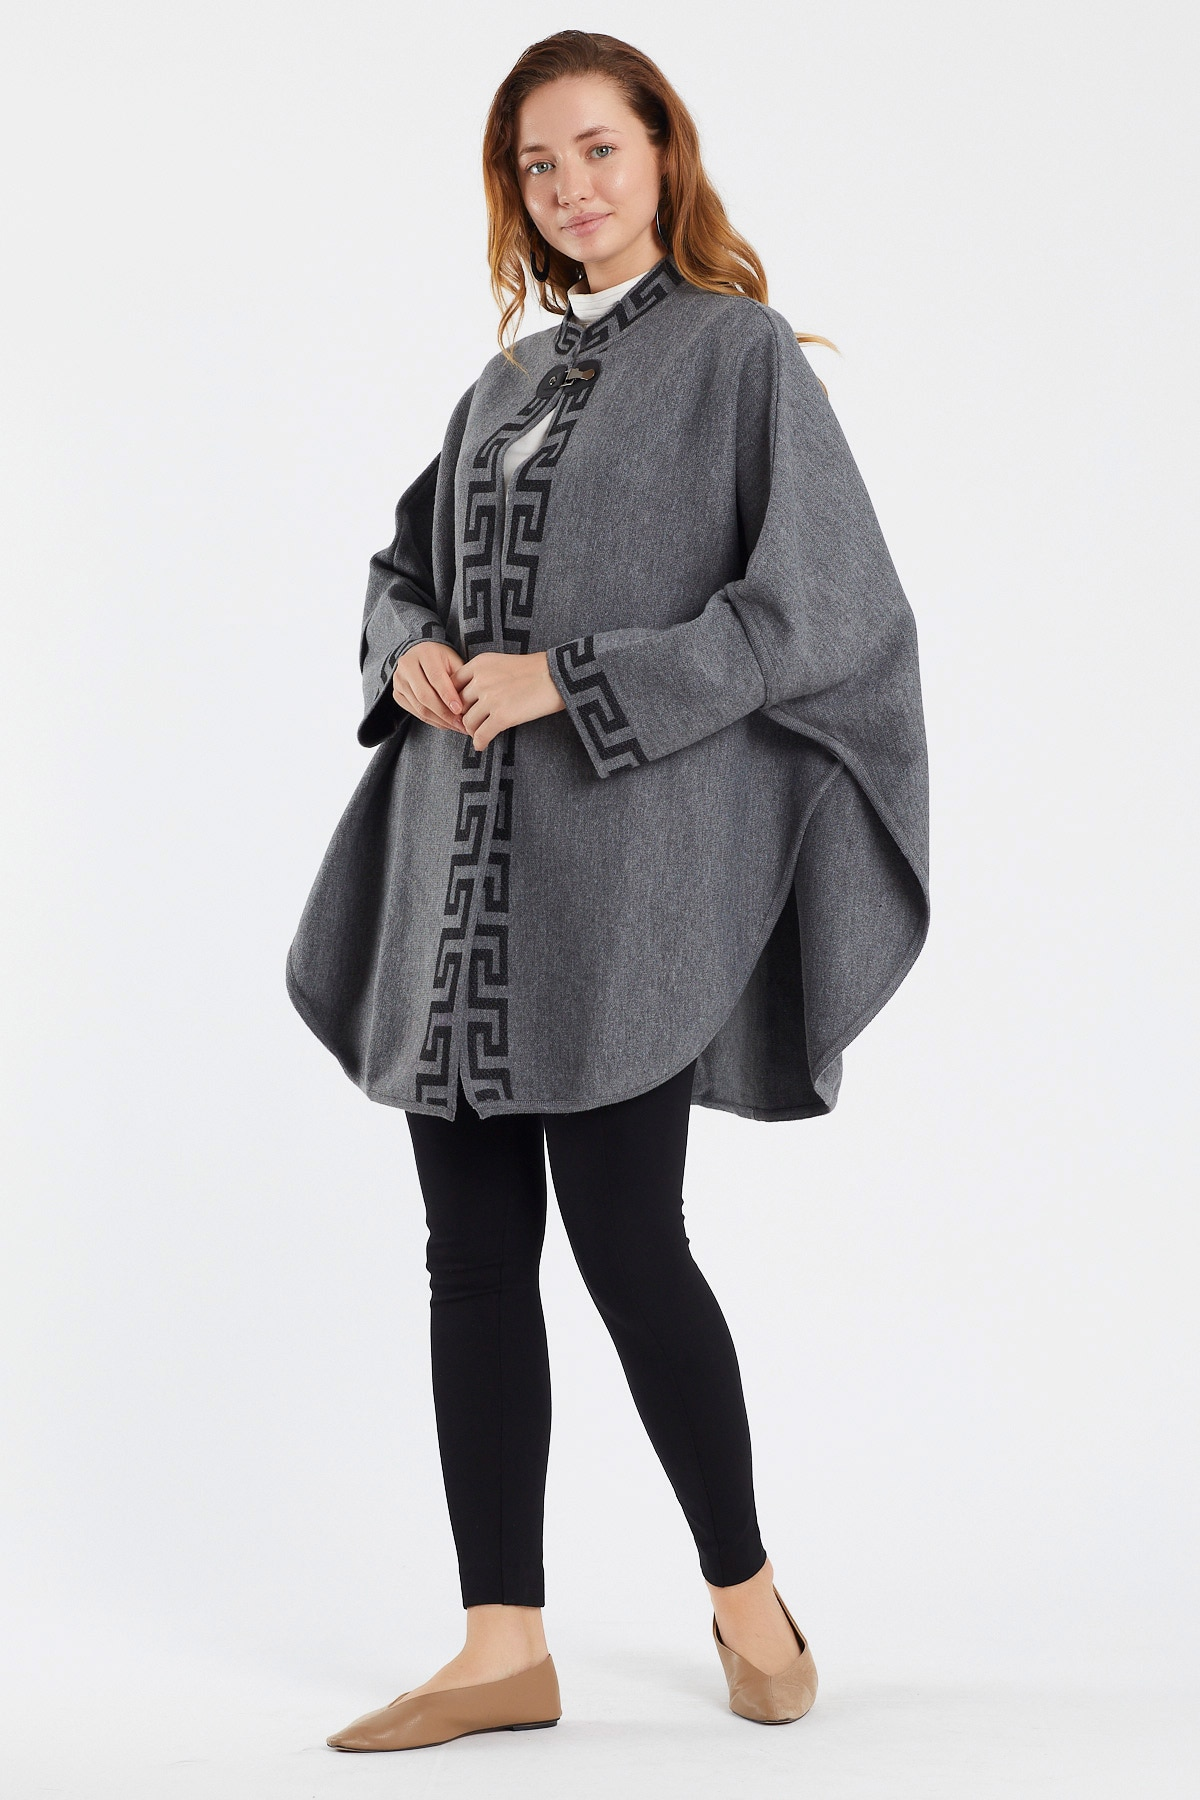 Women's dress Shawl Wrap Knitted capes and Poncho – BTS top Oversized hoddie Cardigan  Open Front Tassel Cape for Winter enlarge